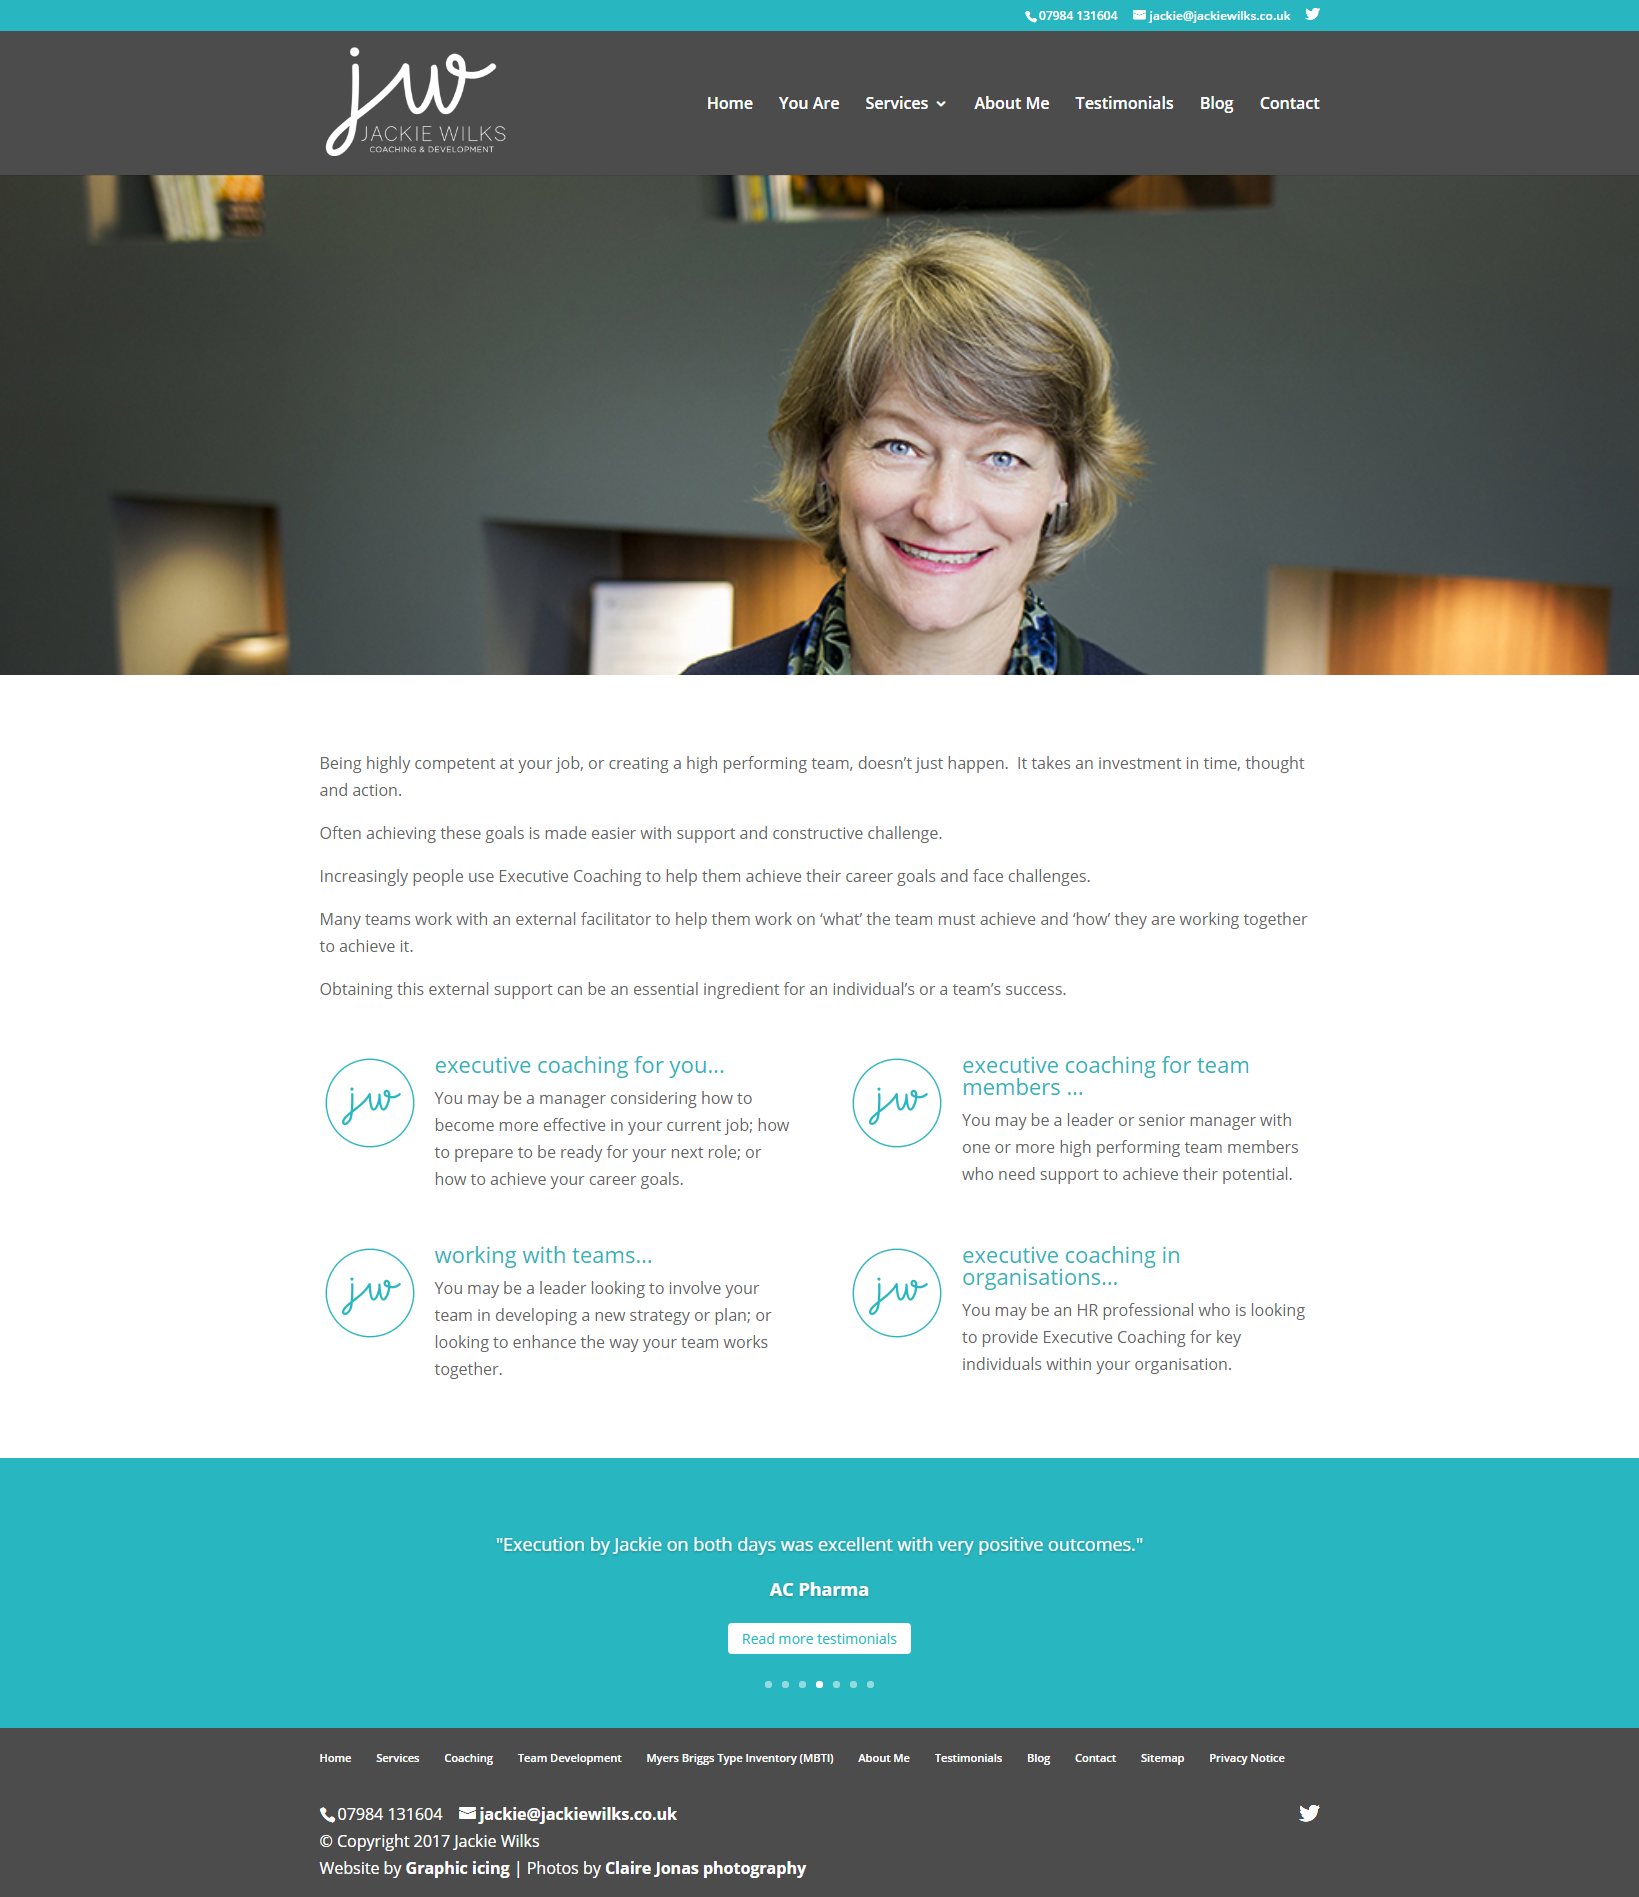 Jackie Wilks Website design